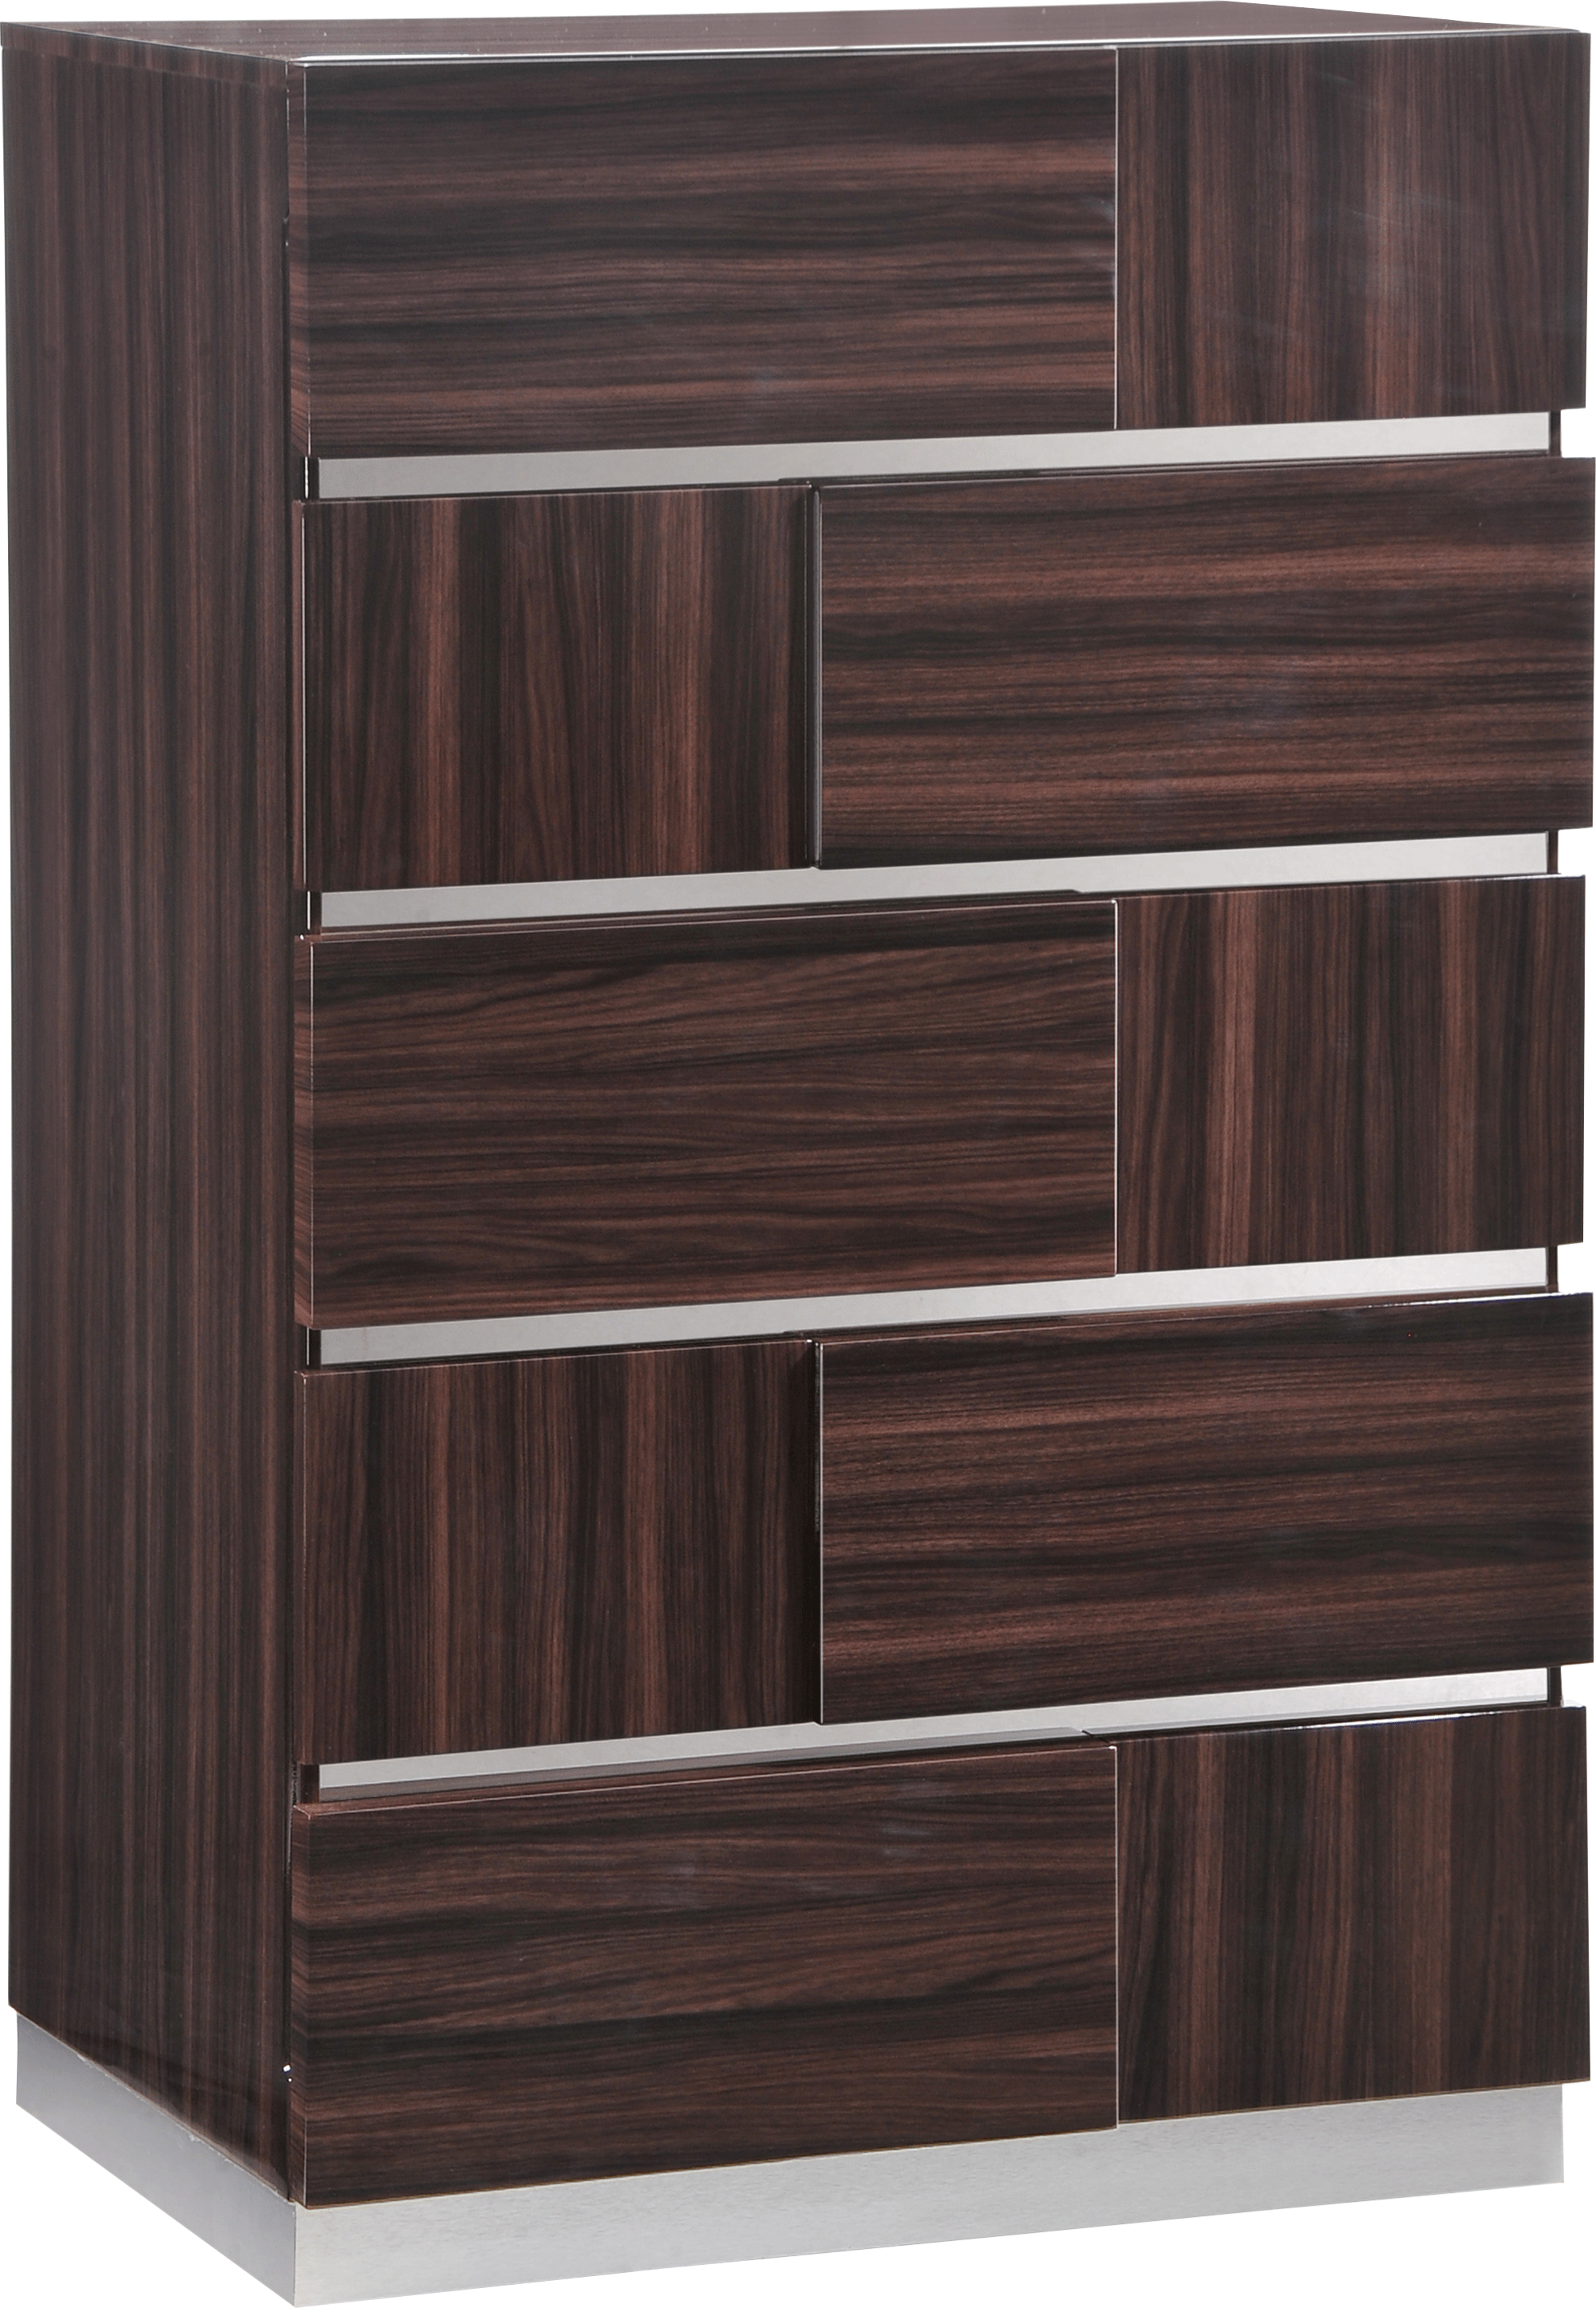 Tribeca Wood Grain Glossy Chest by Global Furniture